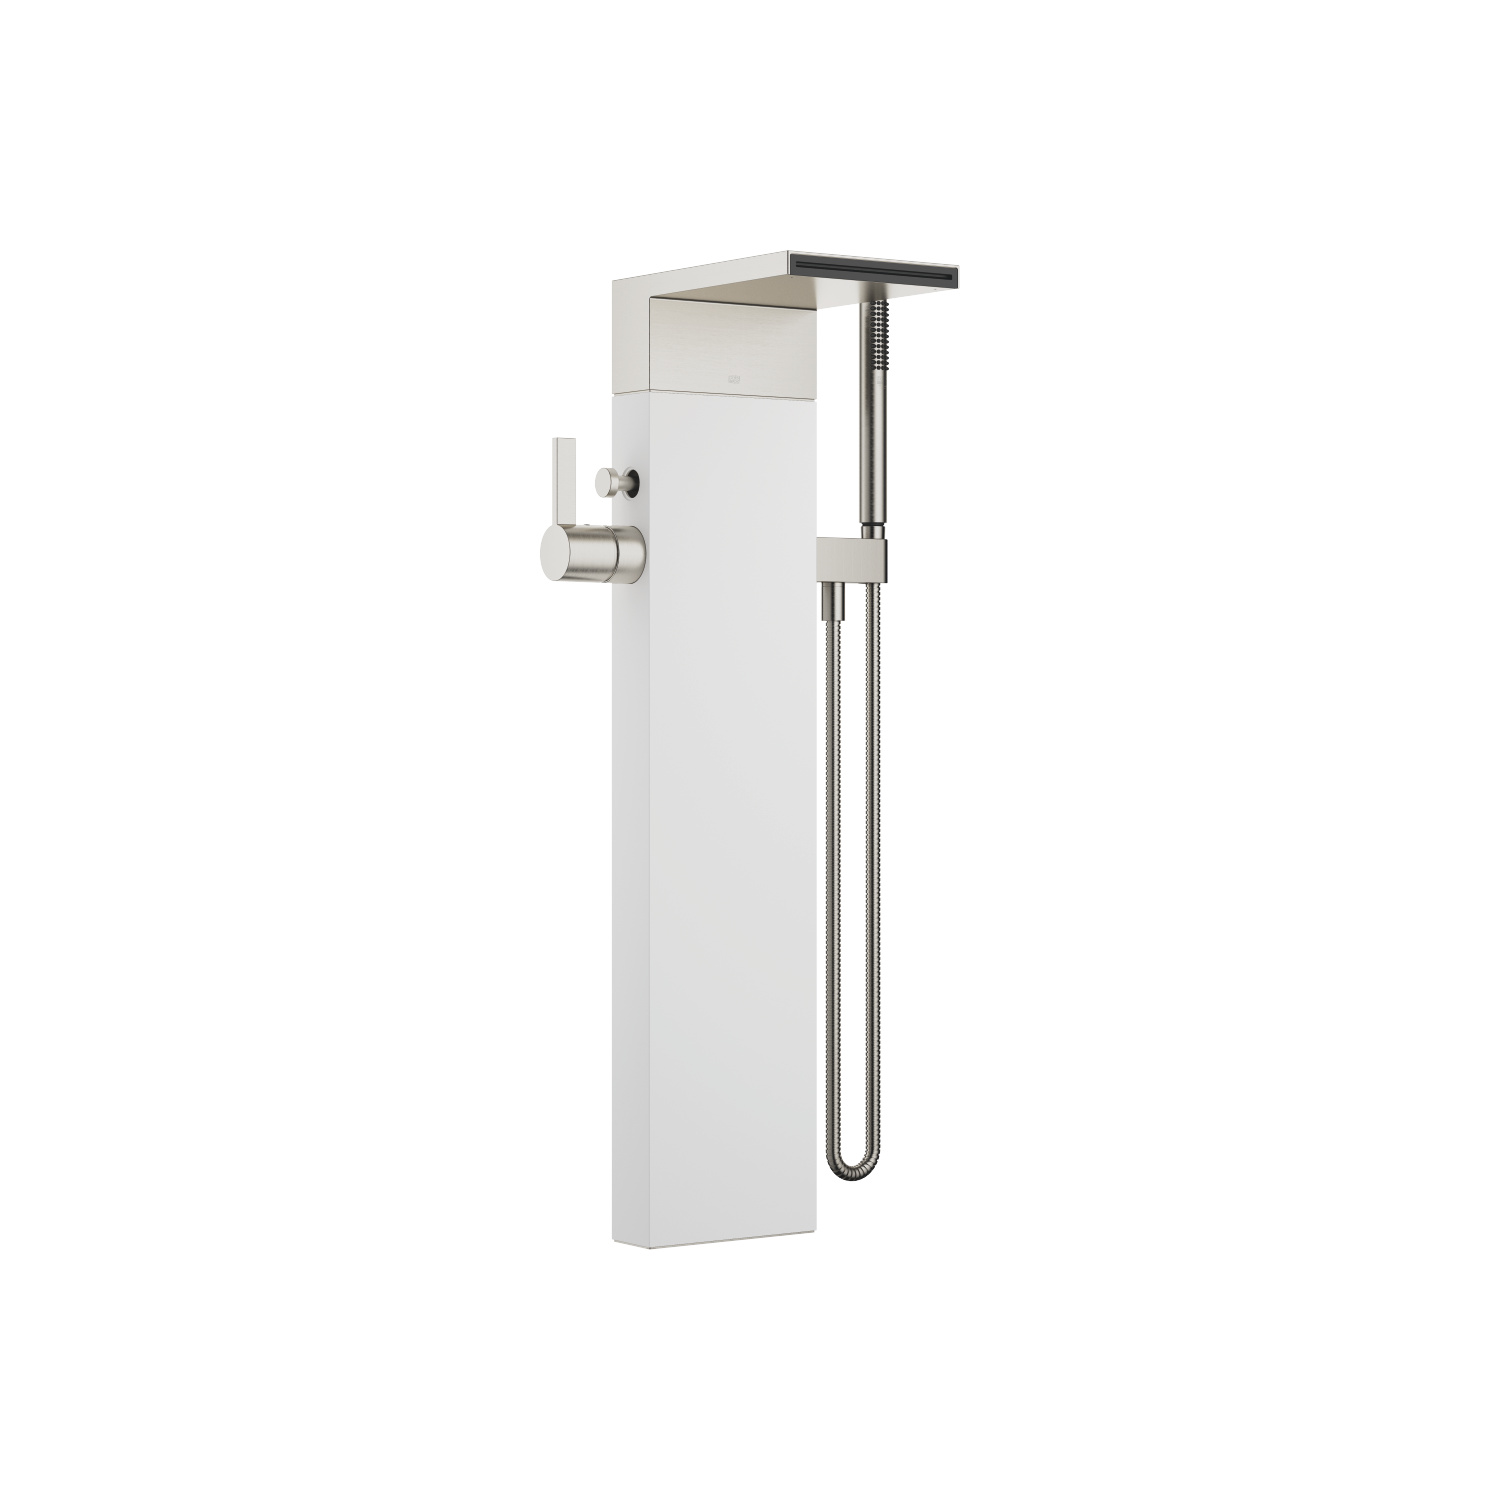 Single-lever bath mixer with cascade spout for free-standing assembly with hand shower set - platinum matt